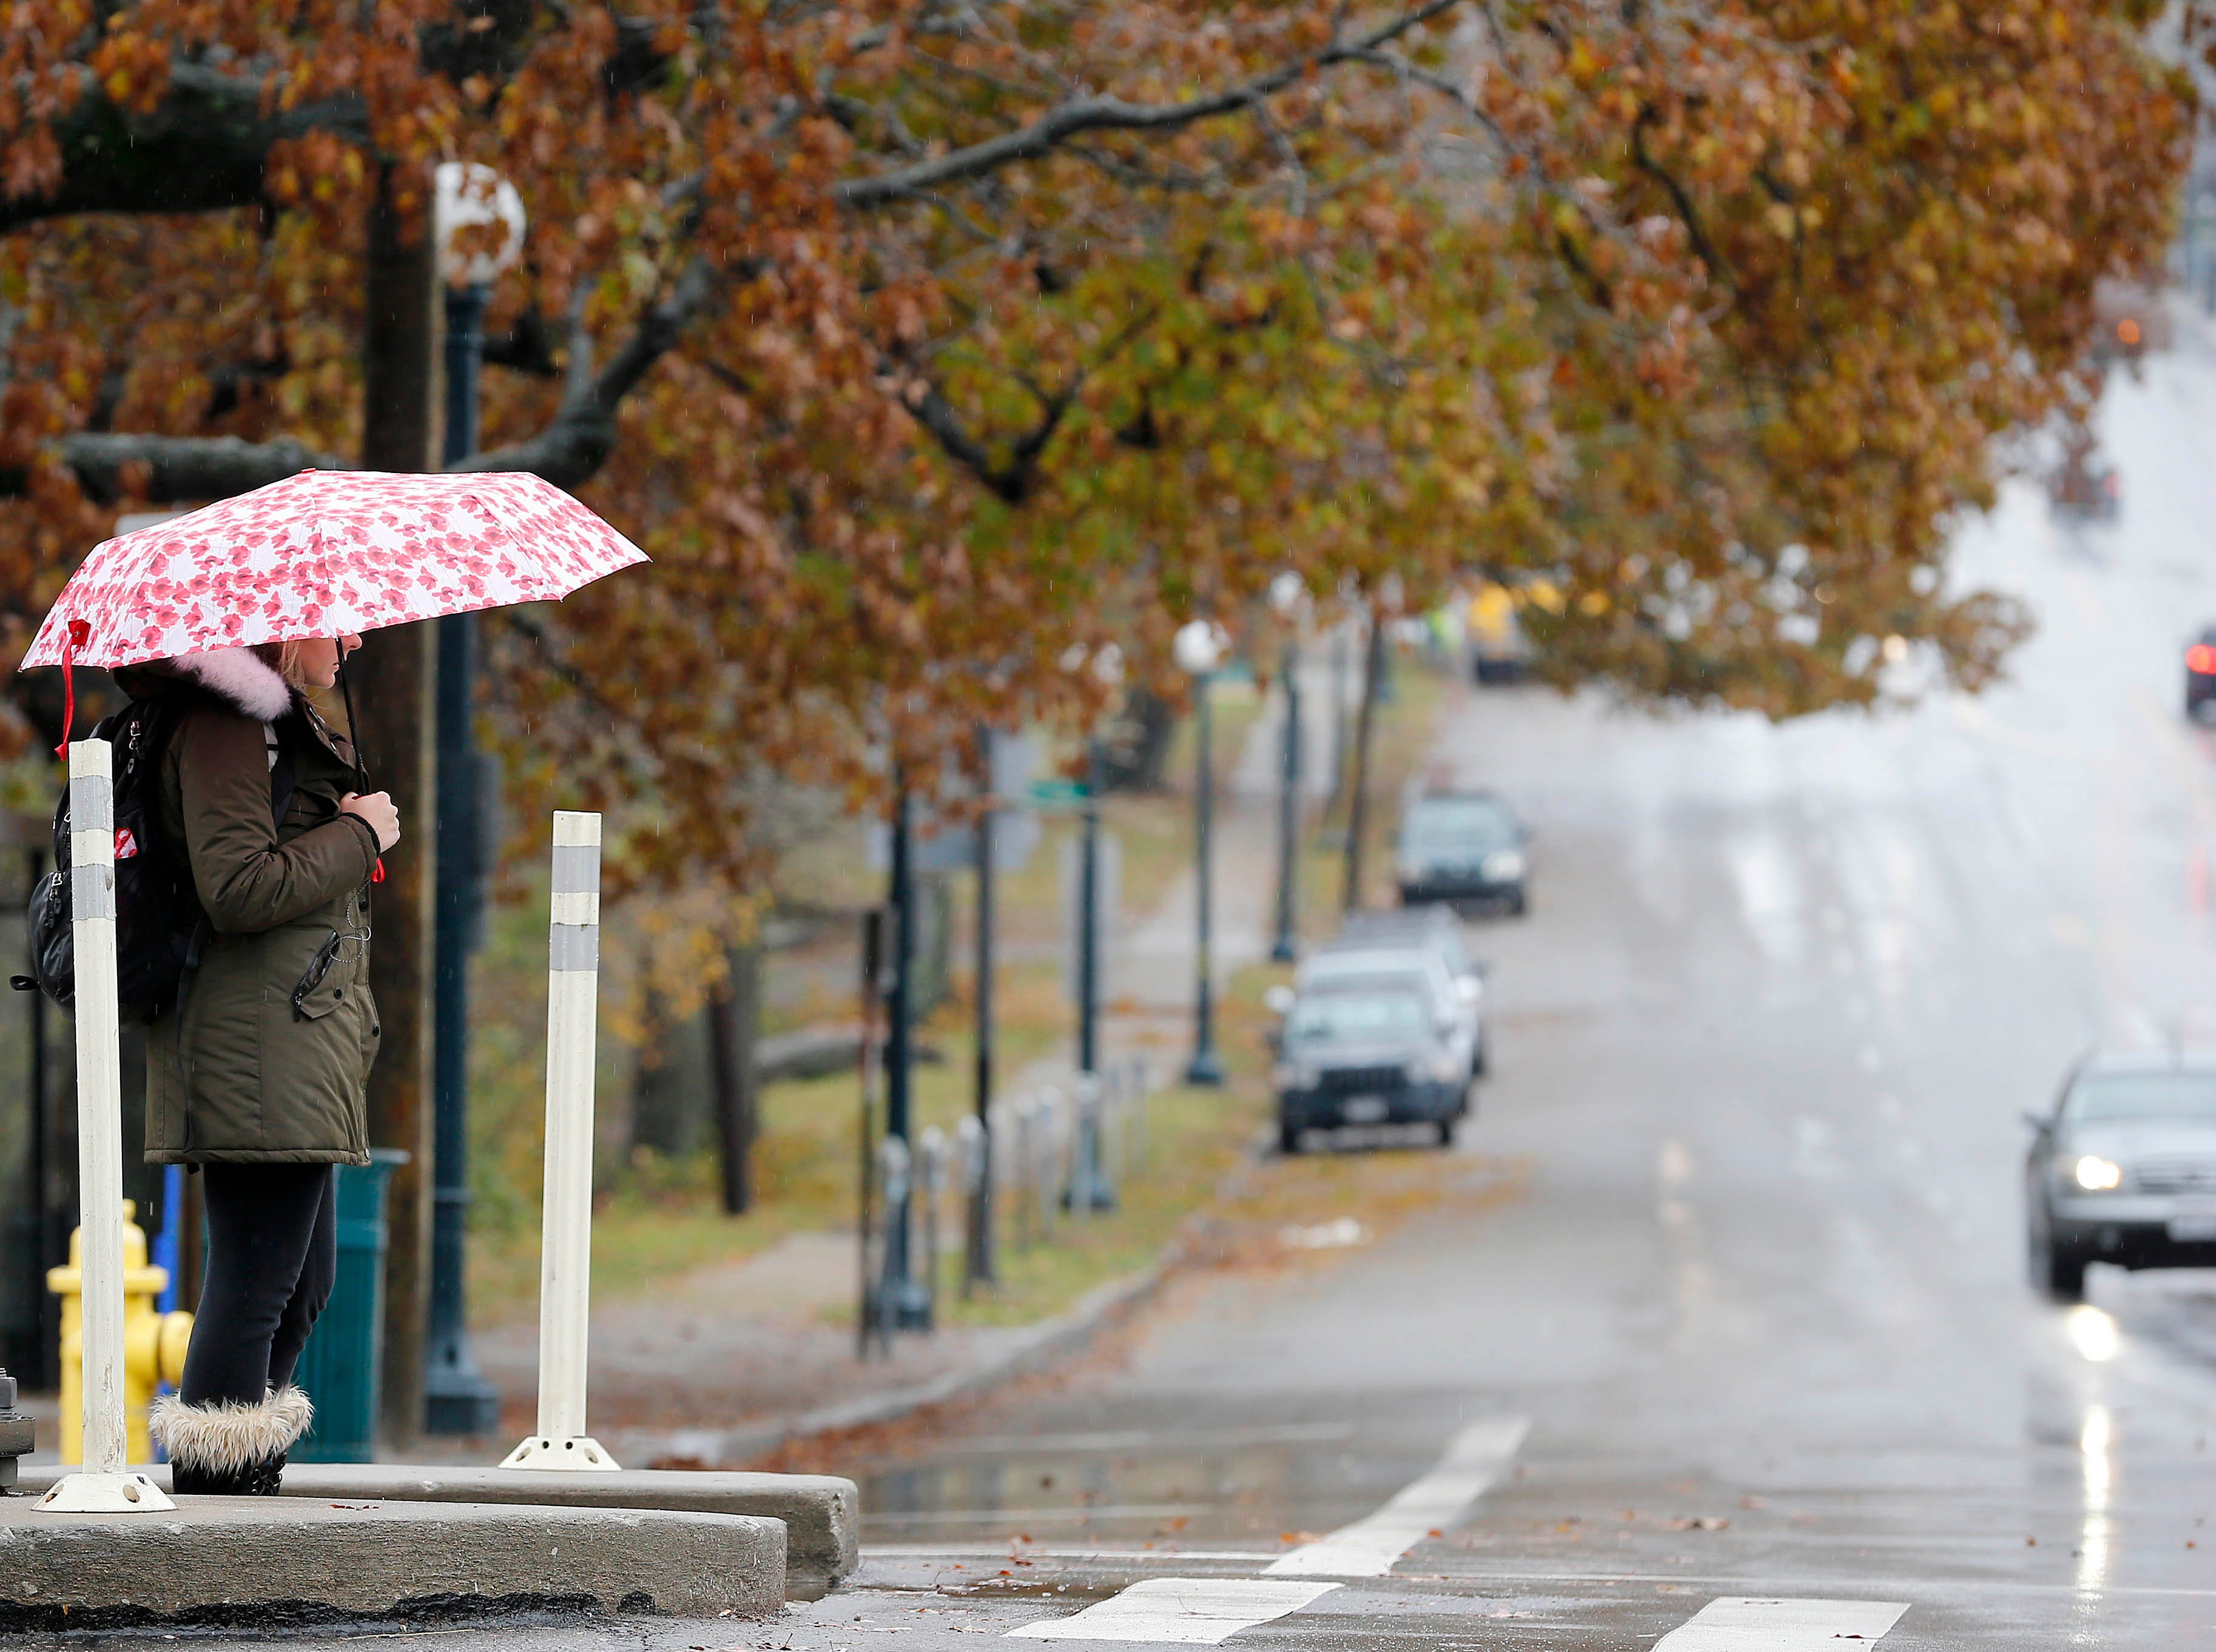 A woman waits to cross Clifton and Dixmyth Ludlow Avenues Thursday, Nov. 15, 2018, as the rain the rain continues to fall. An overnight ice storm caused downed power lines and trees. According to Duke Energy, 102,267 customers were without power in the region Thursday morning.